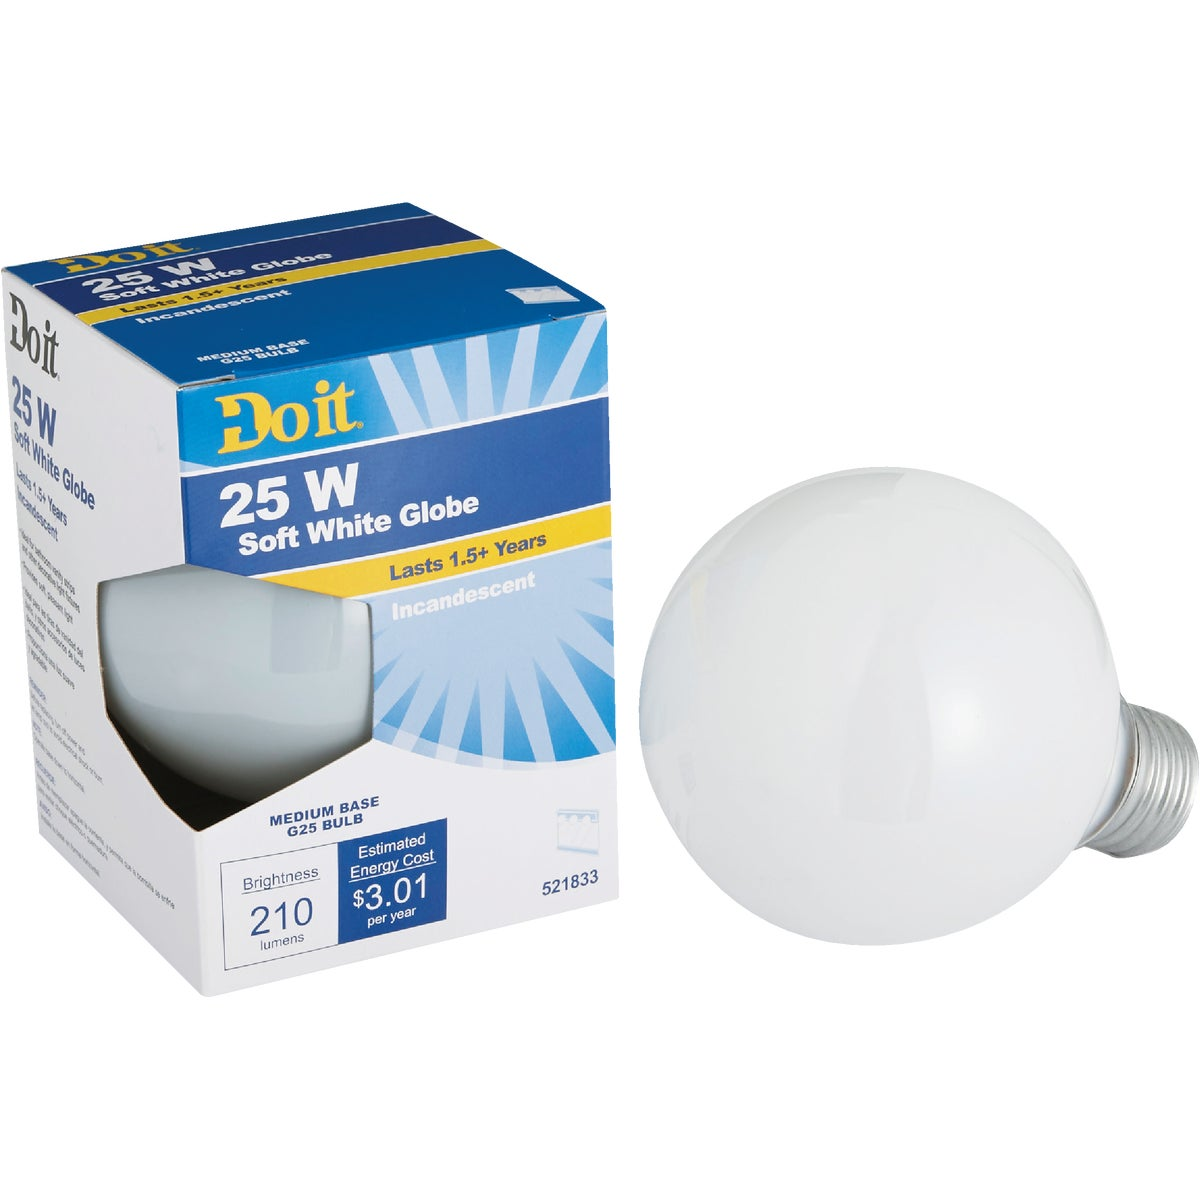 25W WHT 3-1/8GLOBE BULB - 17855 25G25/W-DIB by G E Private Label